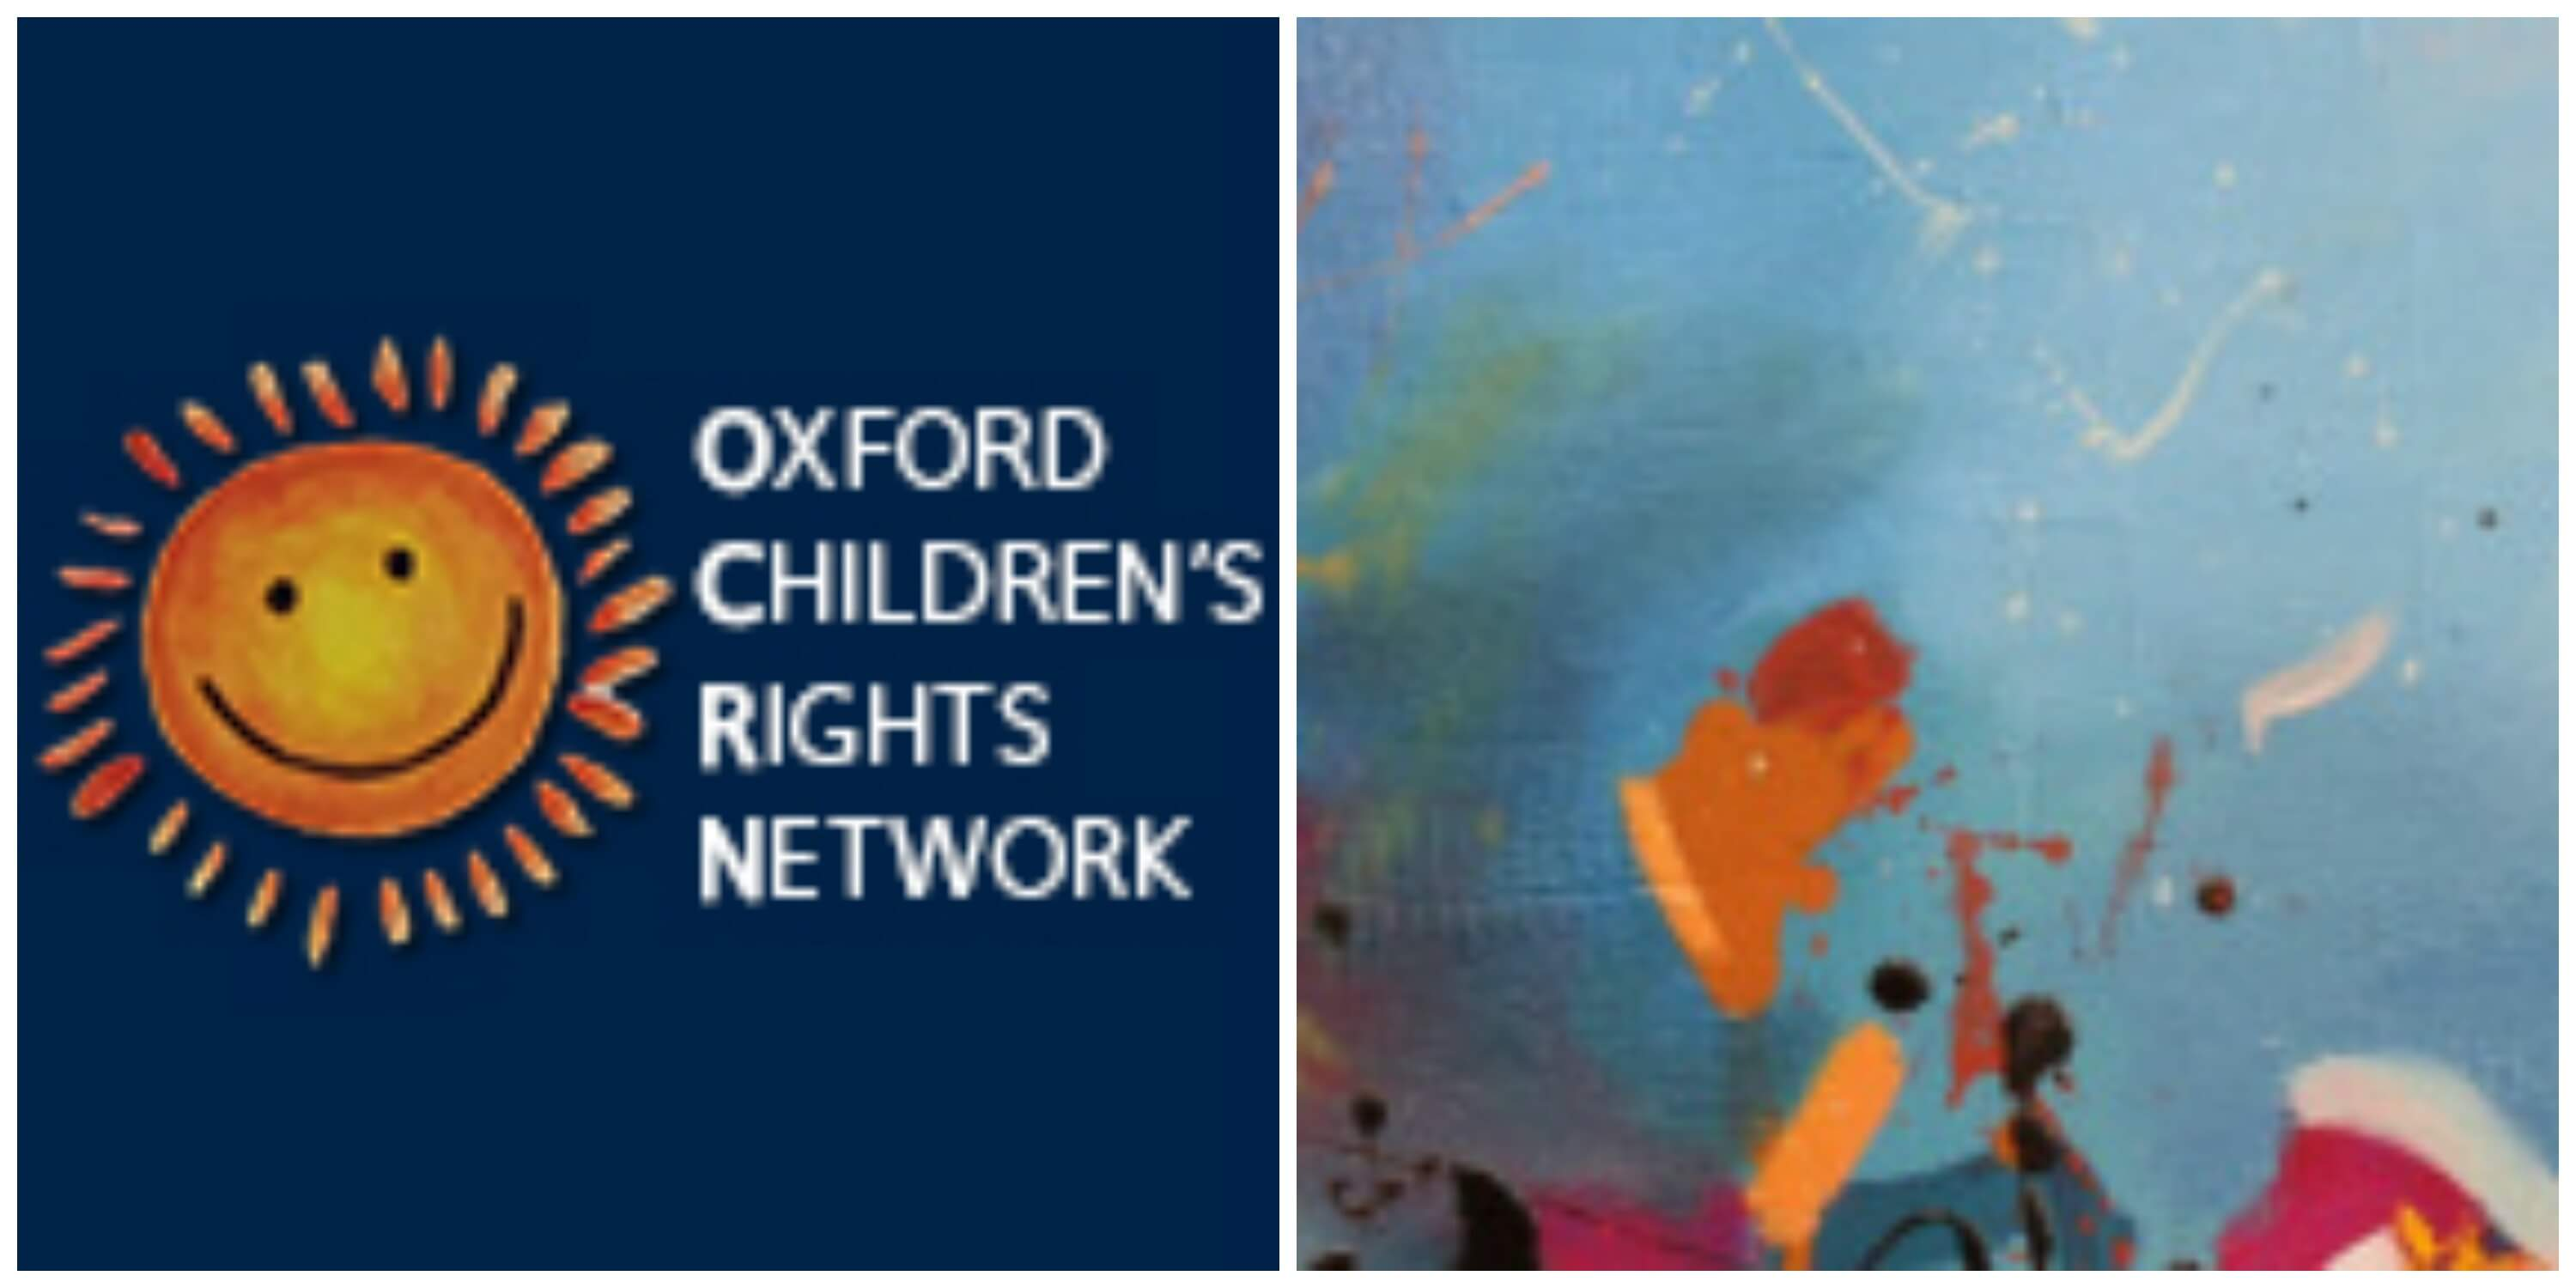 Call for Papers: Children's Rights in Fragile Contexts:  Exploring Theoretical and Methodological Research Challenges